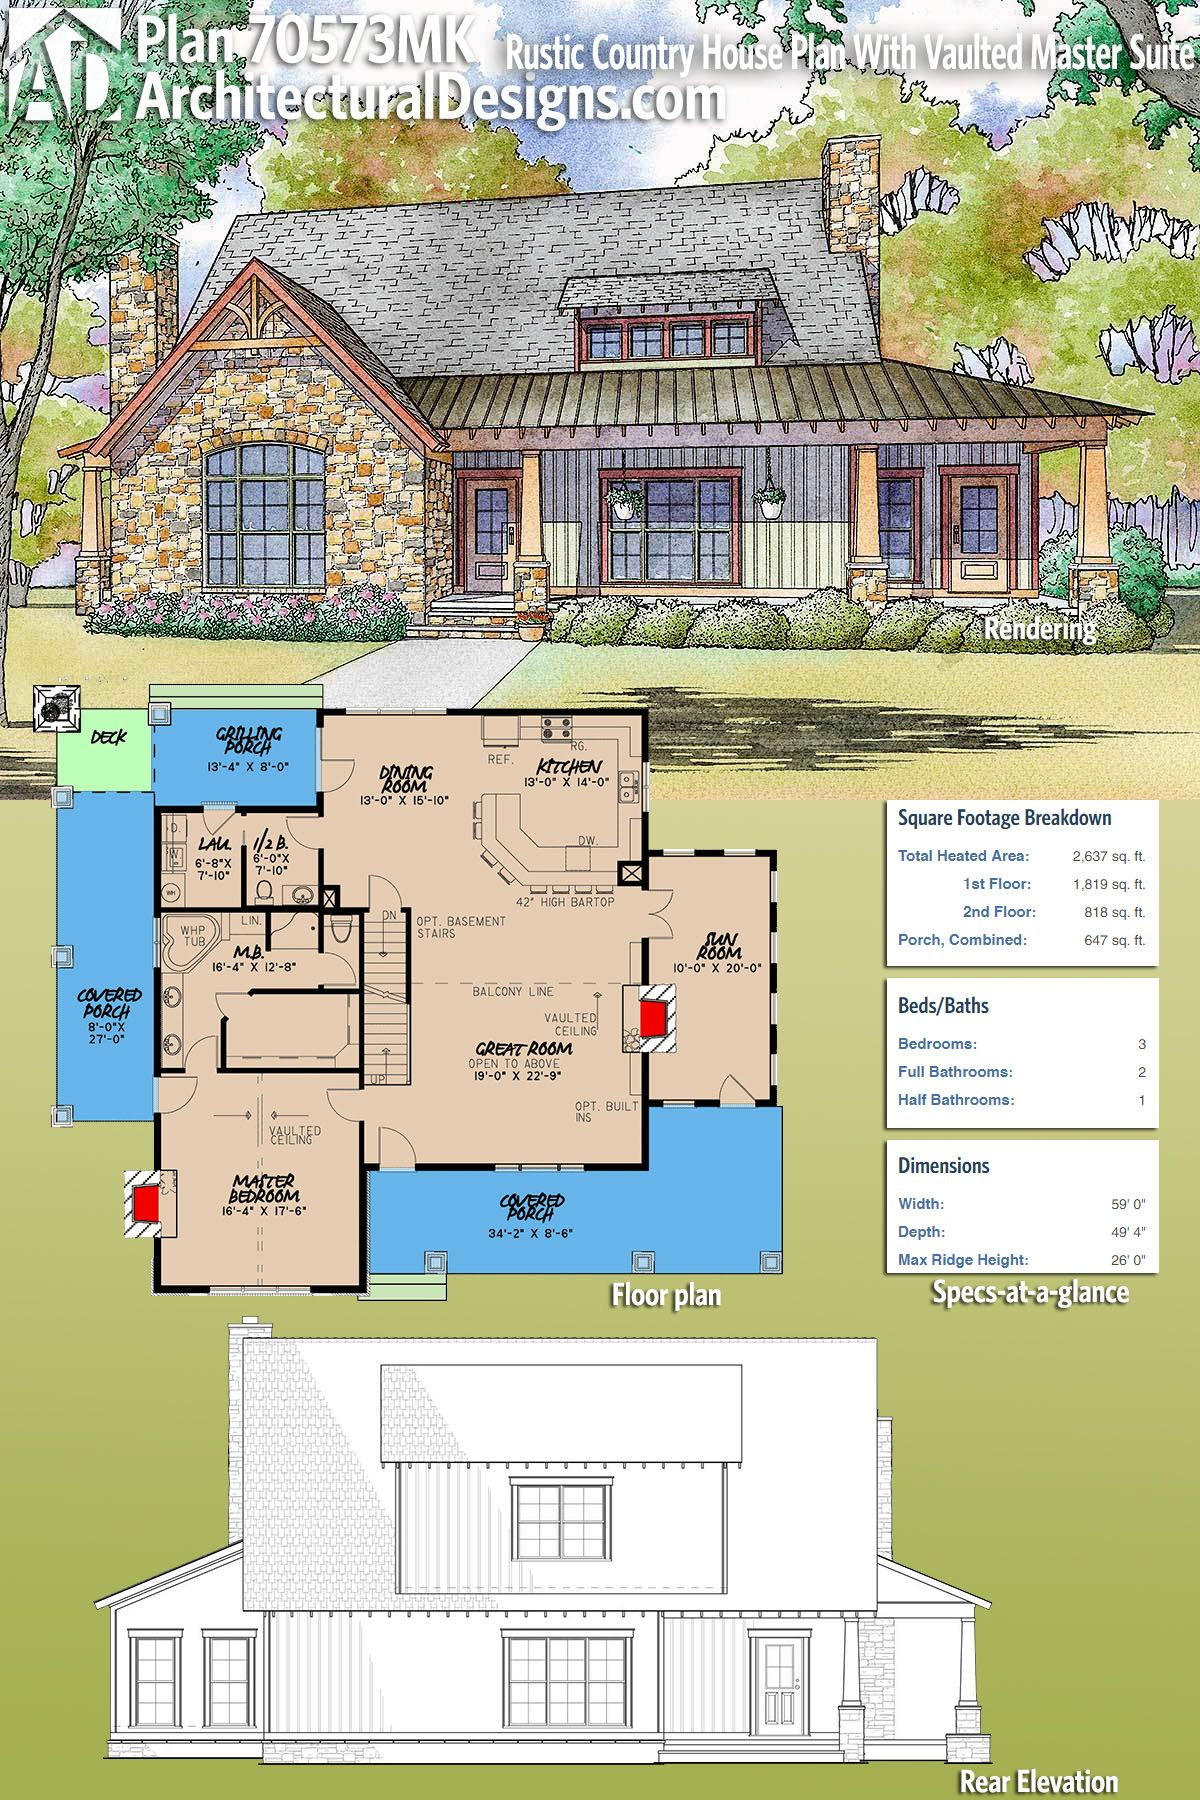 Plan 70573mk Rustic Country House Plan With Vaulted Master Suite Country House Plan Rustic House Plans House Plans